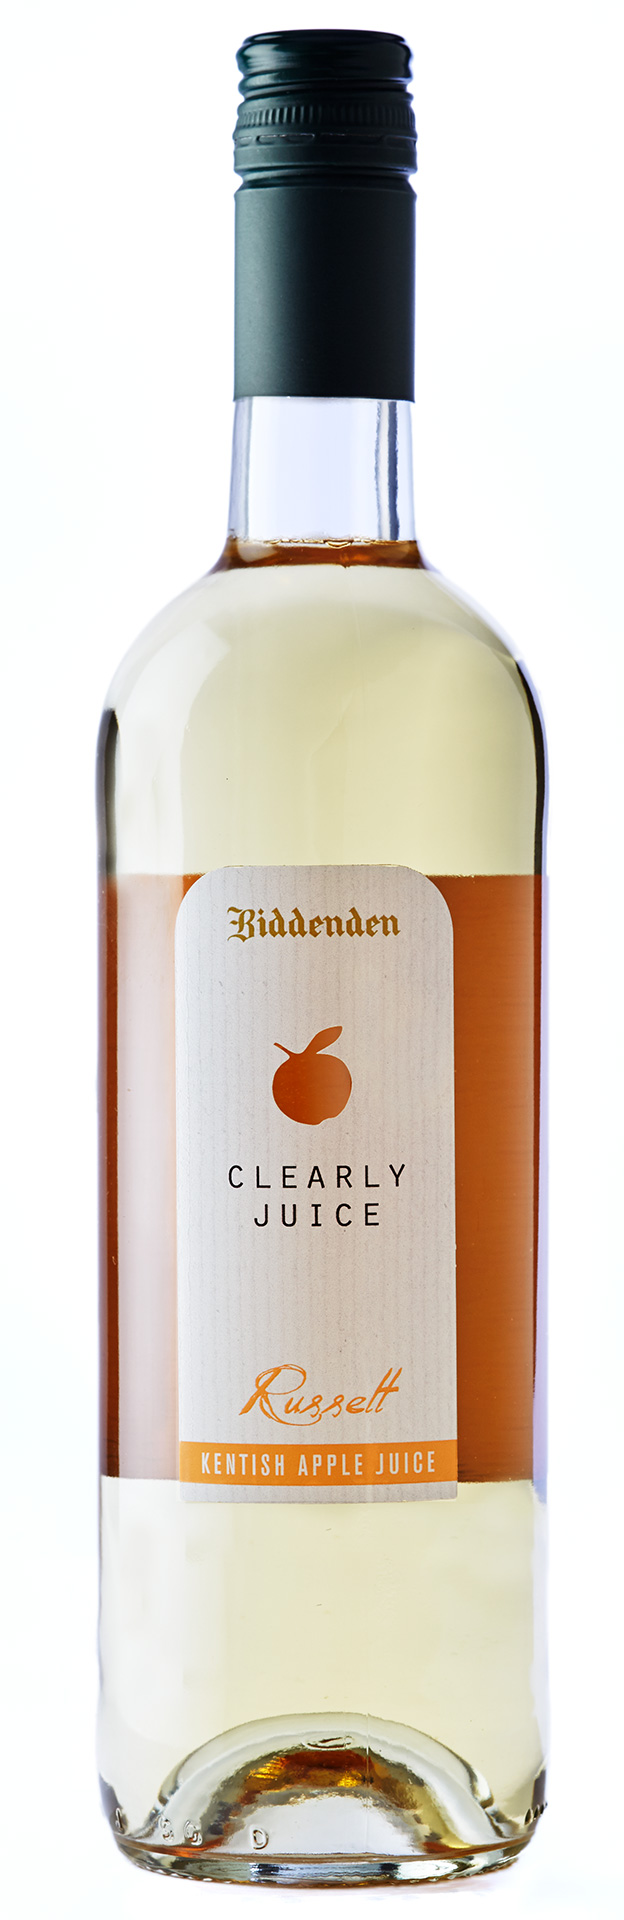 russet-clearly-juice